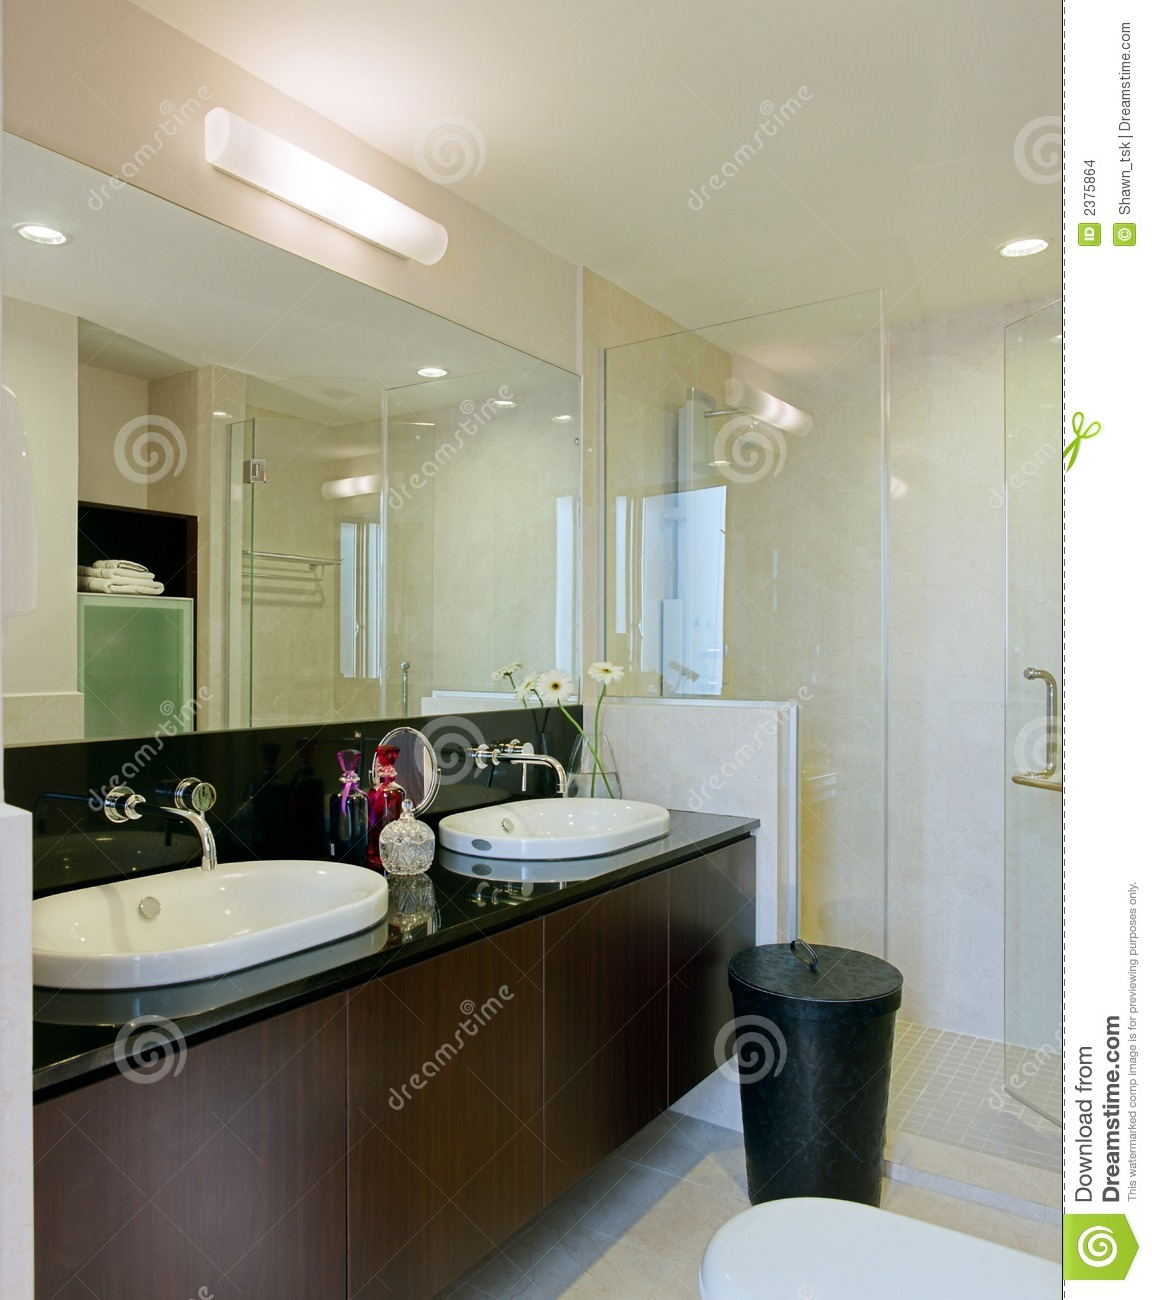 Interior design bathroom stock photo image of cabinet for Bathroom interior design